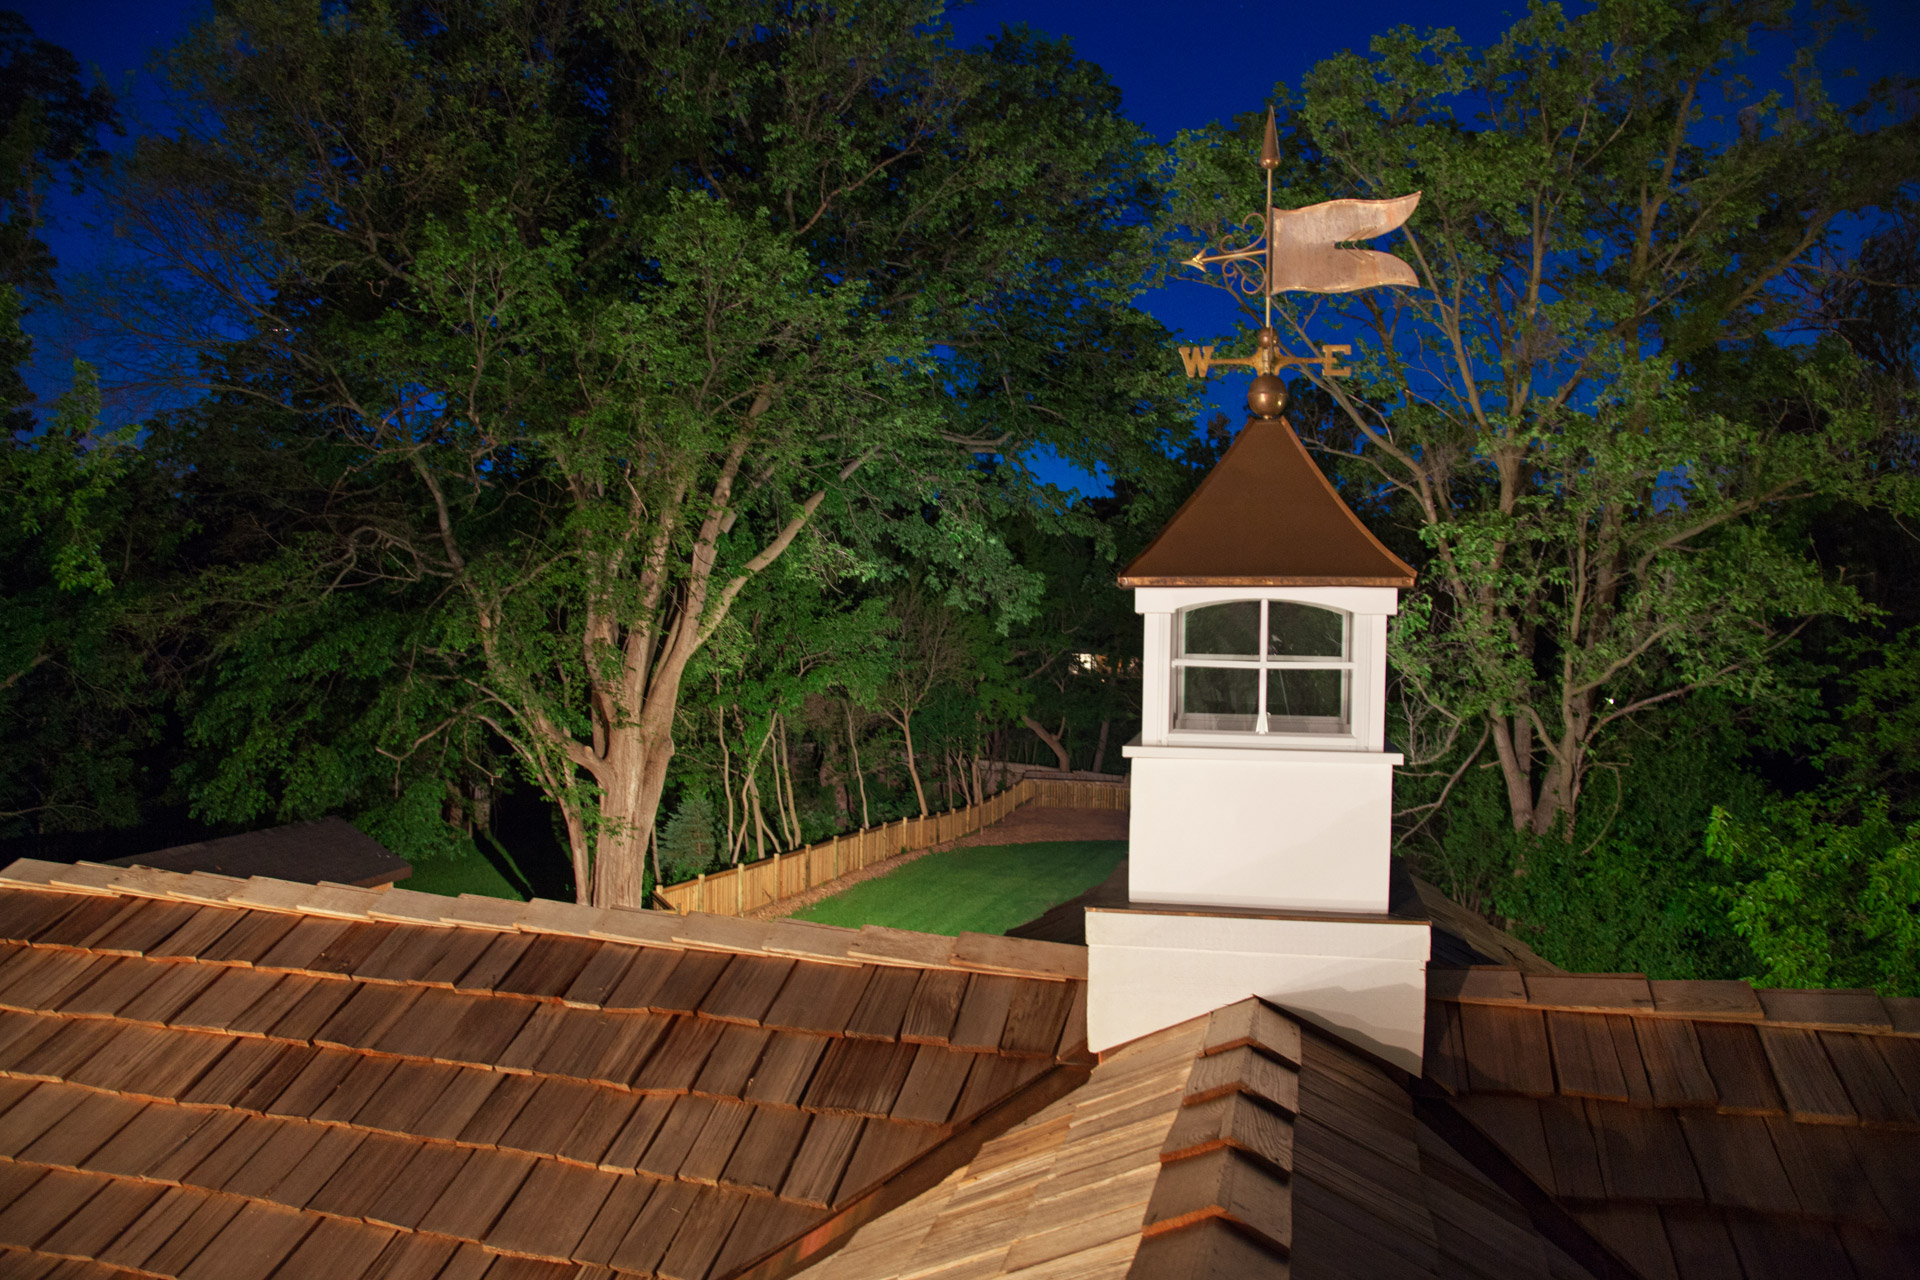 Cedar shake shingle roof